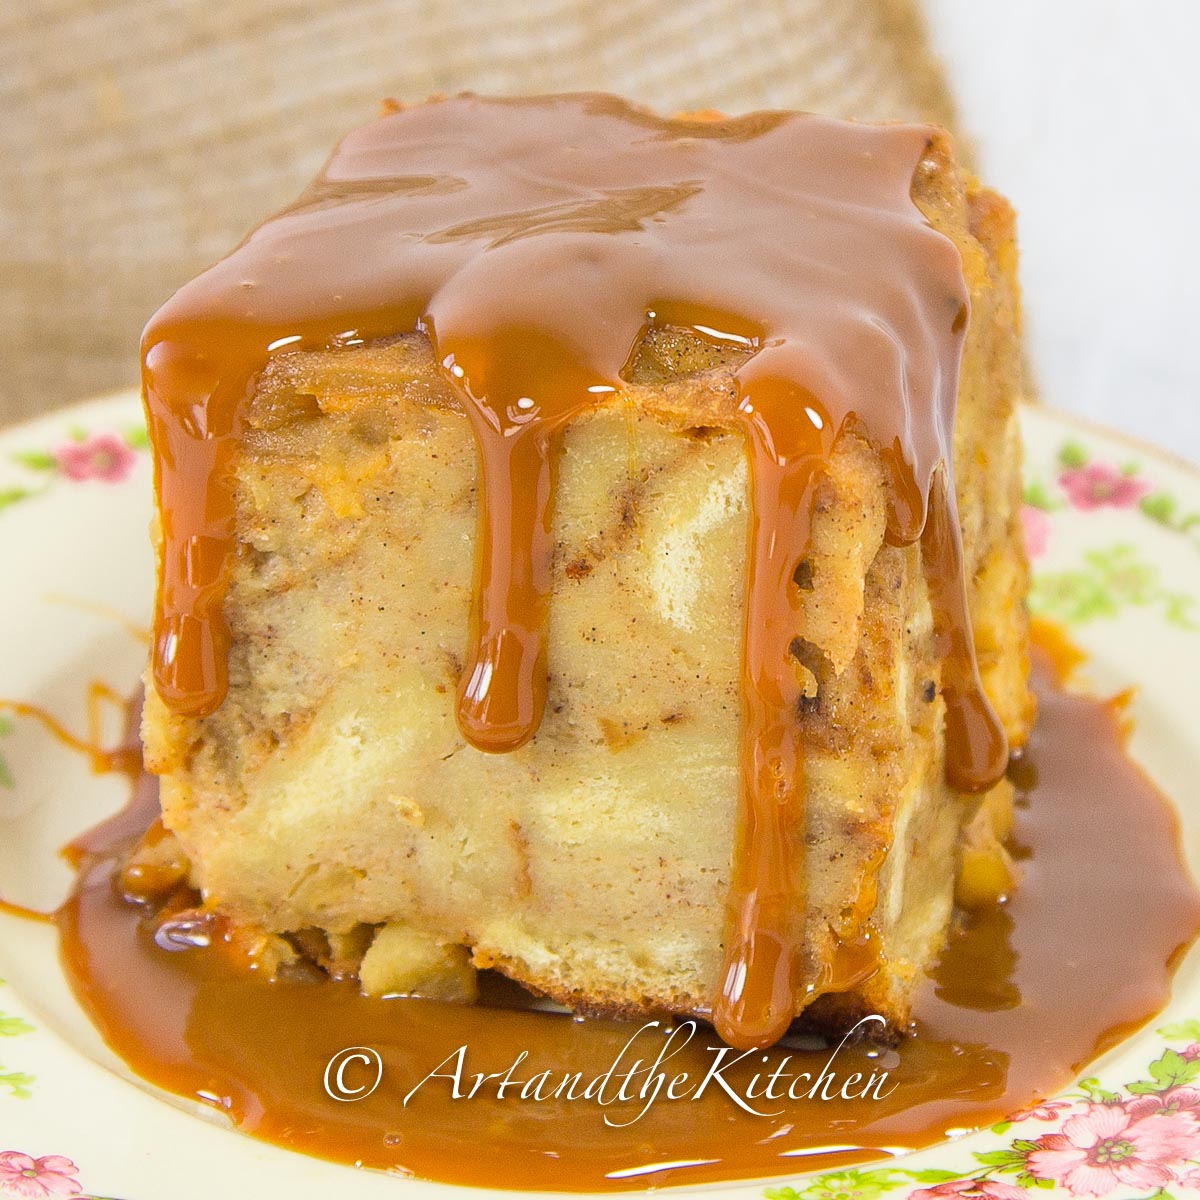 ... bread pudding, be sure to try this recipe for Pumpkin Bread Pudding